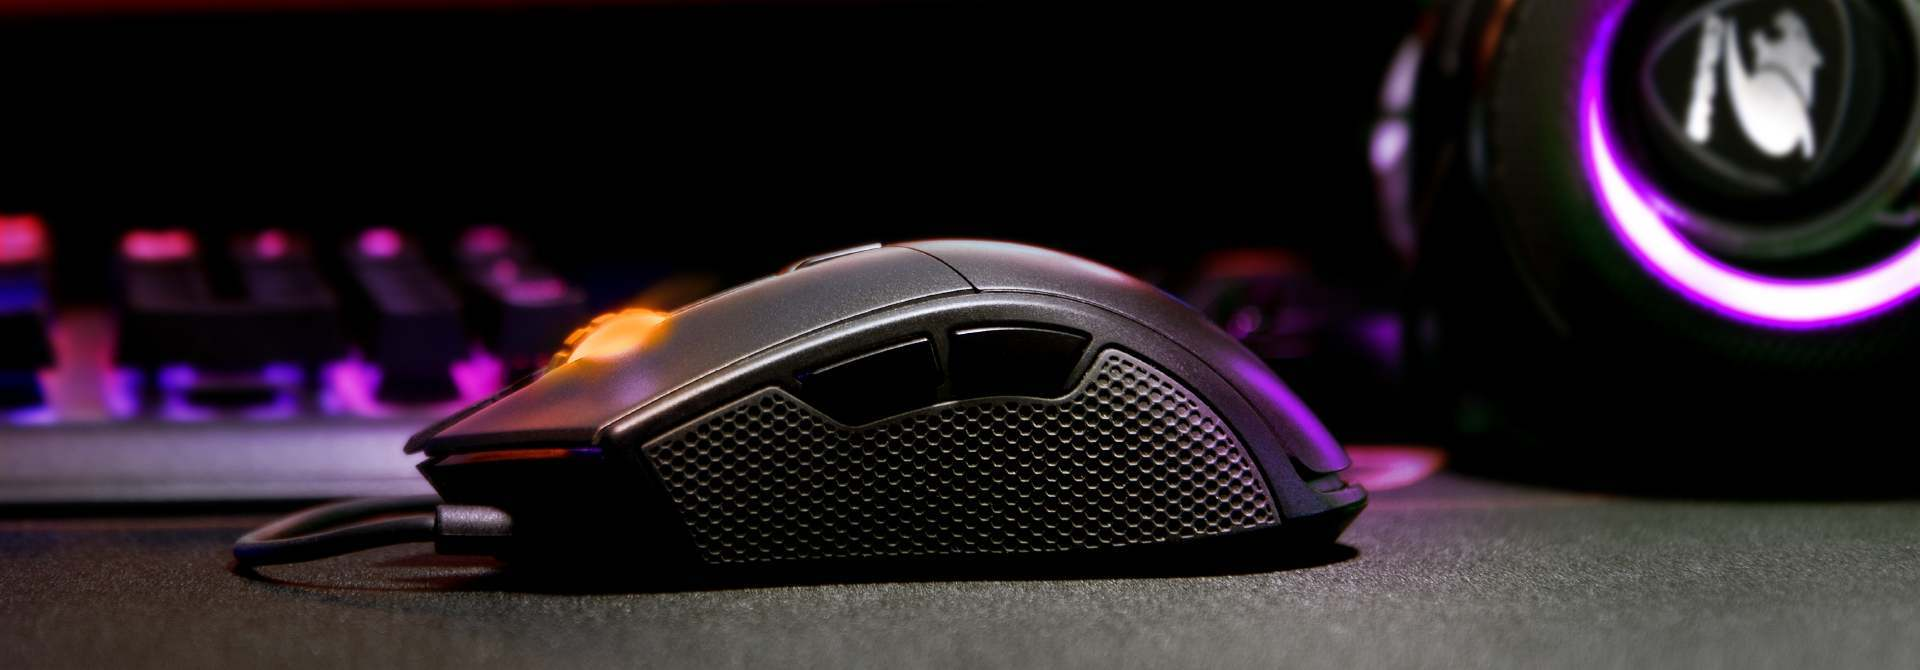 Cougar REVENGER S The Ultimate FPS Mouse​ 15